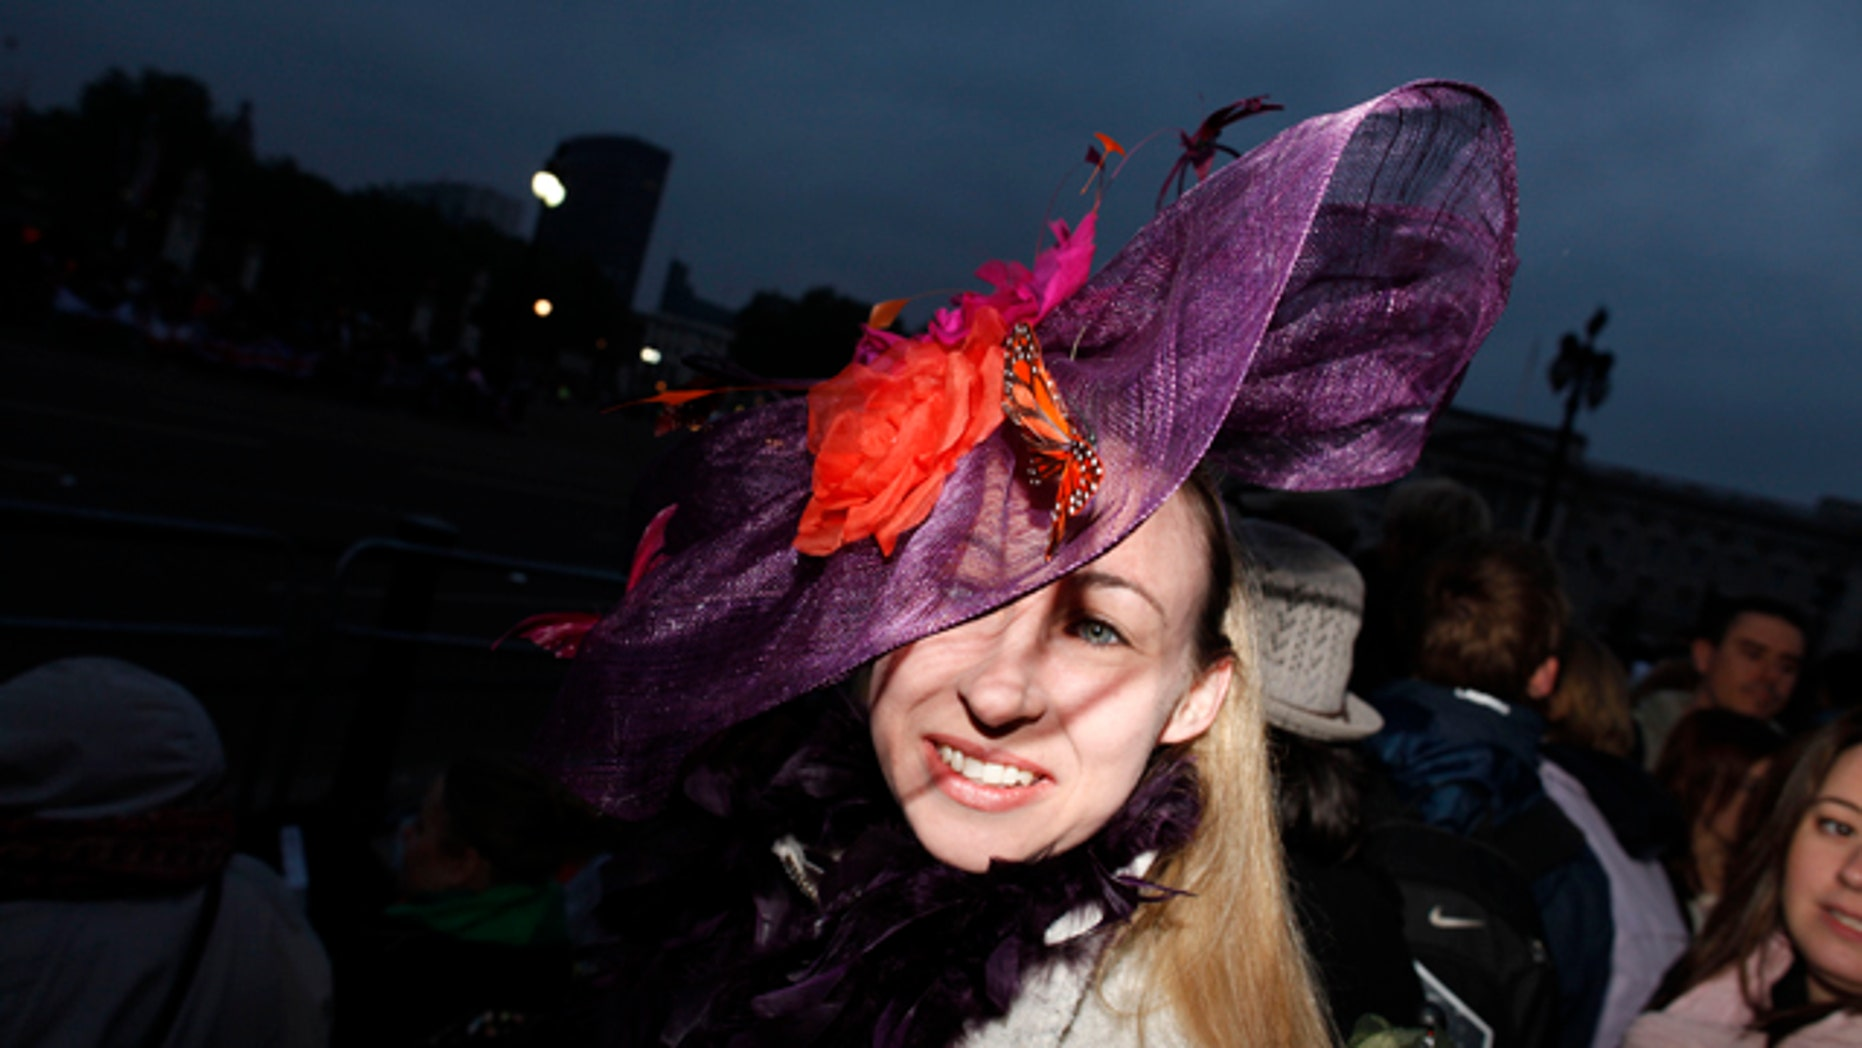 April 29: Christine Peckham from London wears a fancy hat along the Royal Wedding route in London on Friday. (AP)